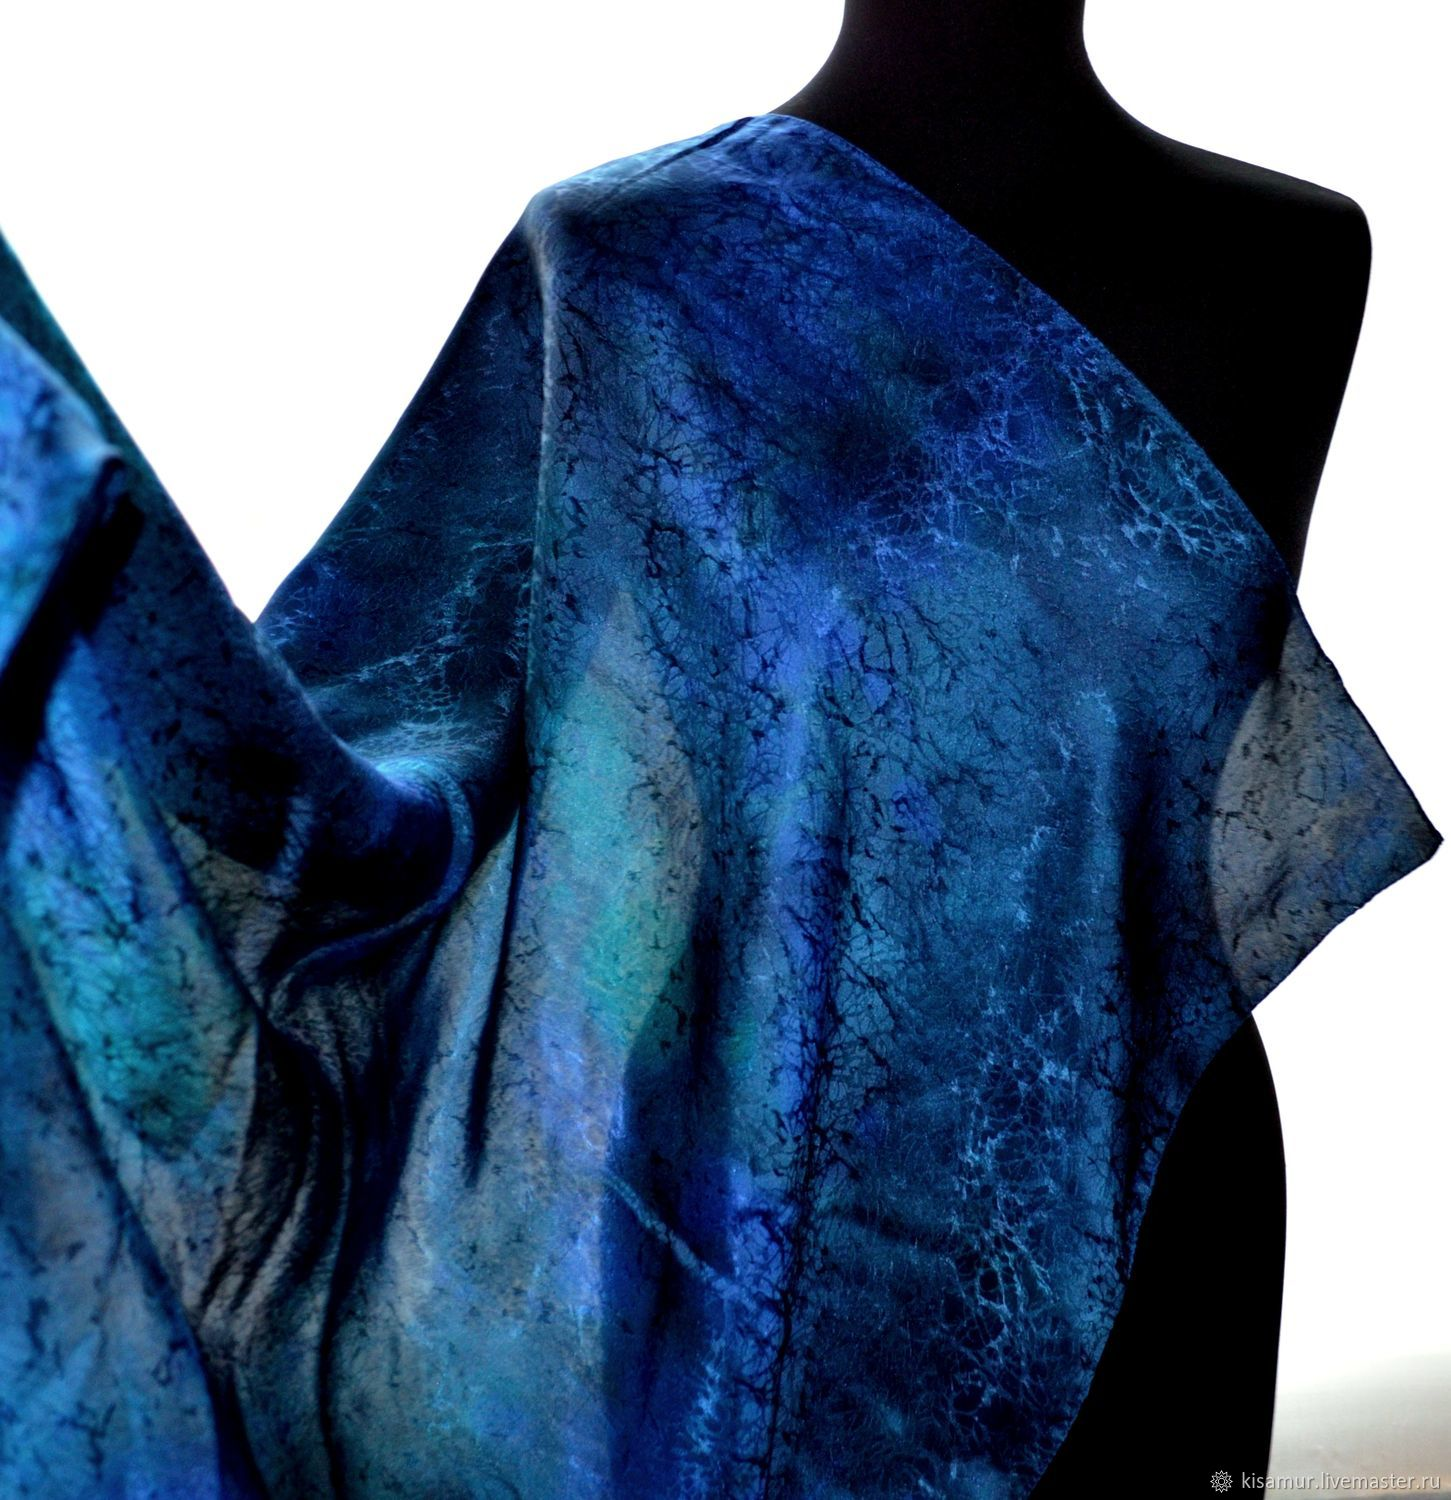 Copy of Copy of Copy of Shawl orange blue pearl luster jacquard pattern, Shawls1, Vyazma,  Фото №1